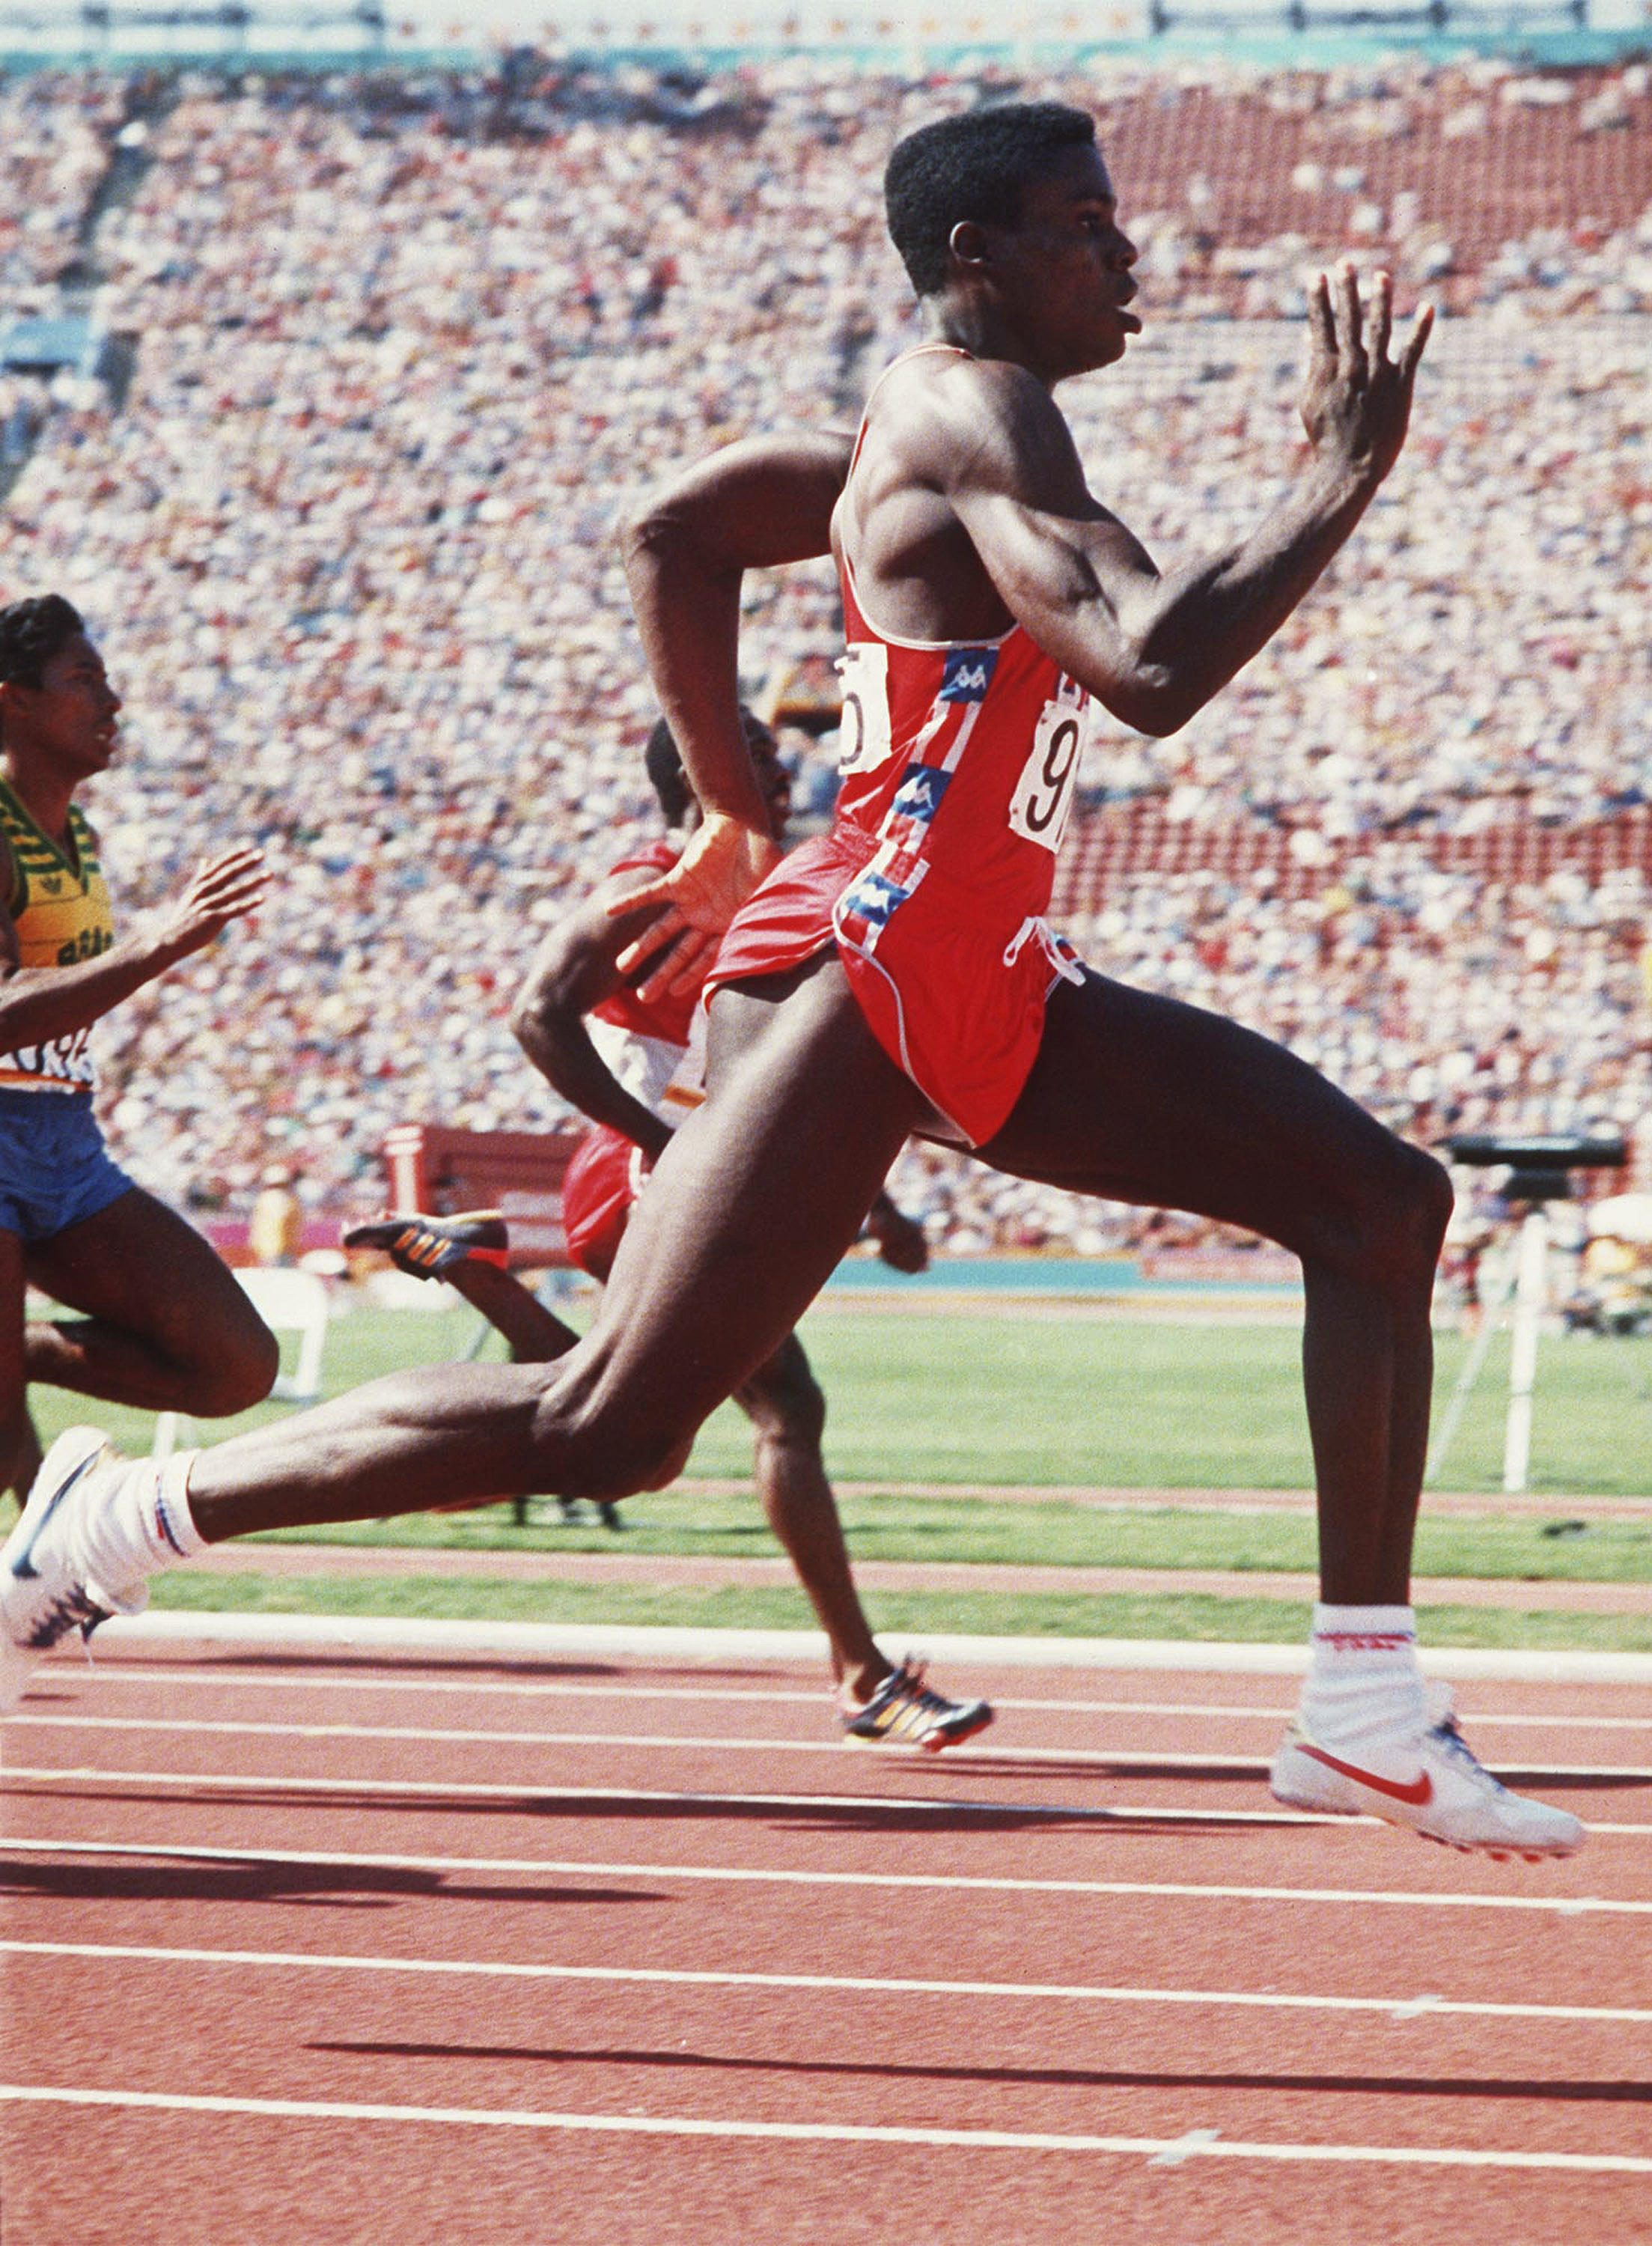 FILE - In this Aug. 8, 1984, file photo, U.S. athlete Carl Lewis runs the men's 200 meters race. Lewis won the gold medal. The U.S. Olympic Committee has formally named the city of Los Angeles as the U.S. bid to host the 2024 Olympics Tuesday, Sept. 1, 20